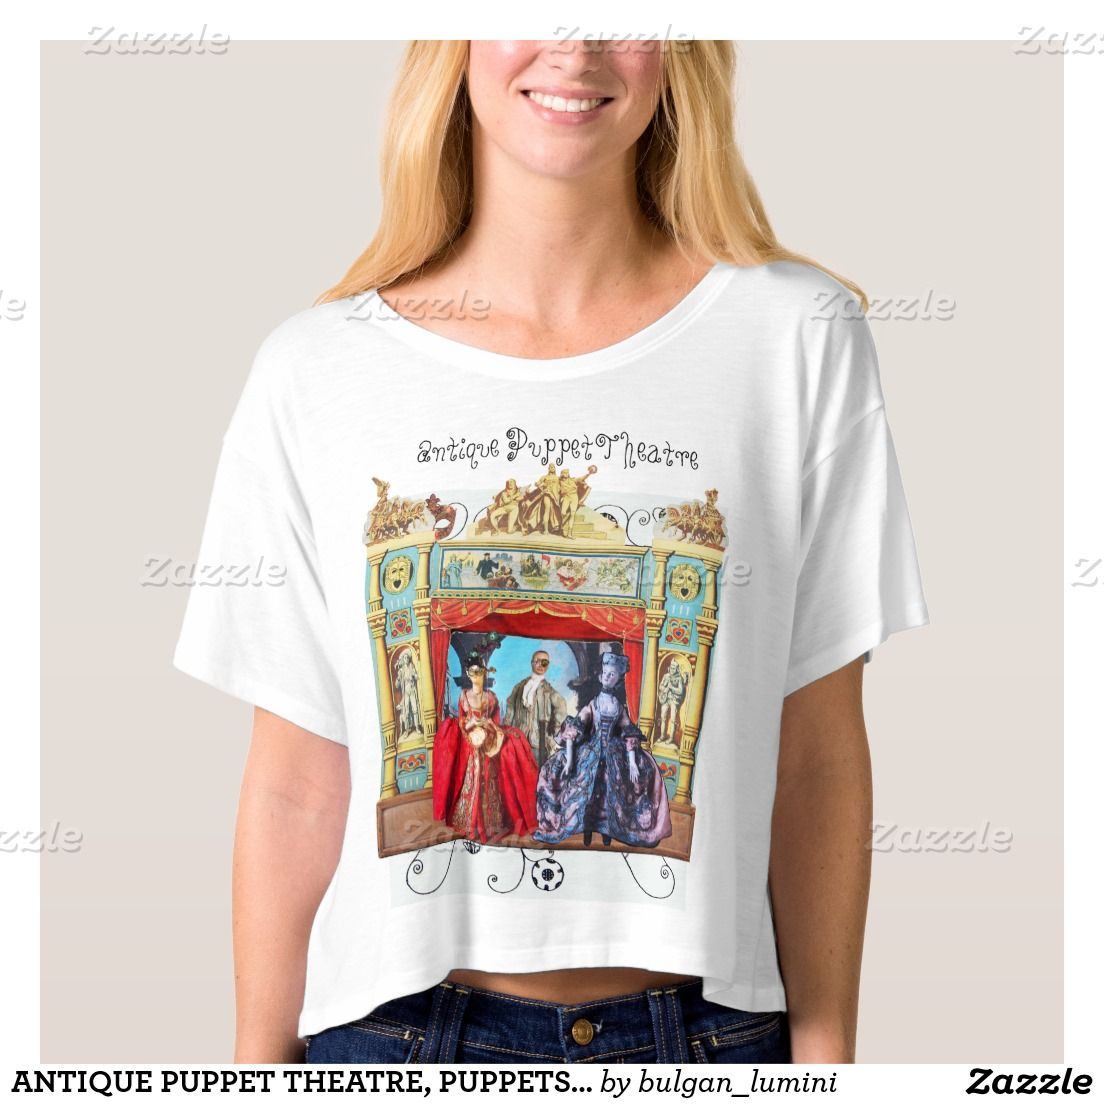 ANTIQUE PUPPET THEATRE, PUPPETS IN MASQUERADE TEES